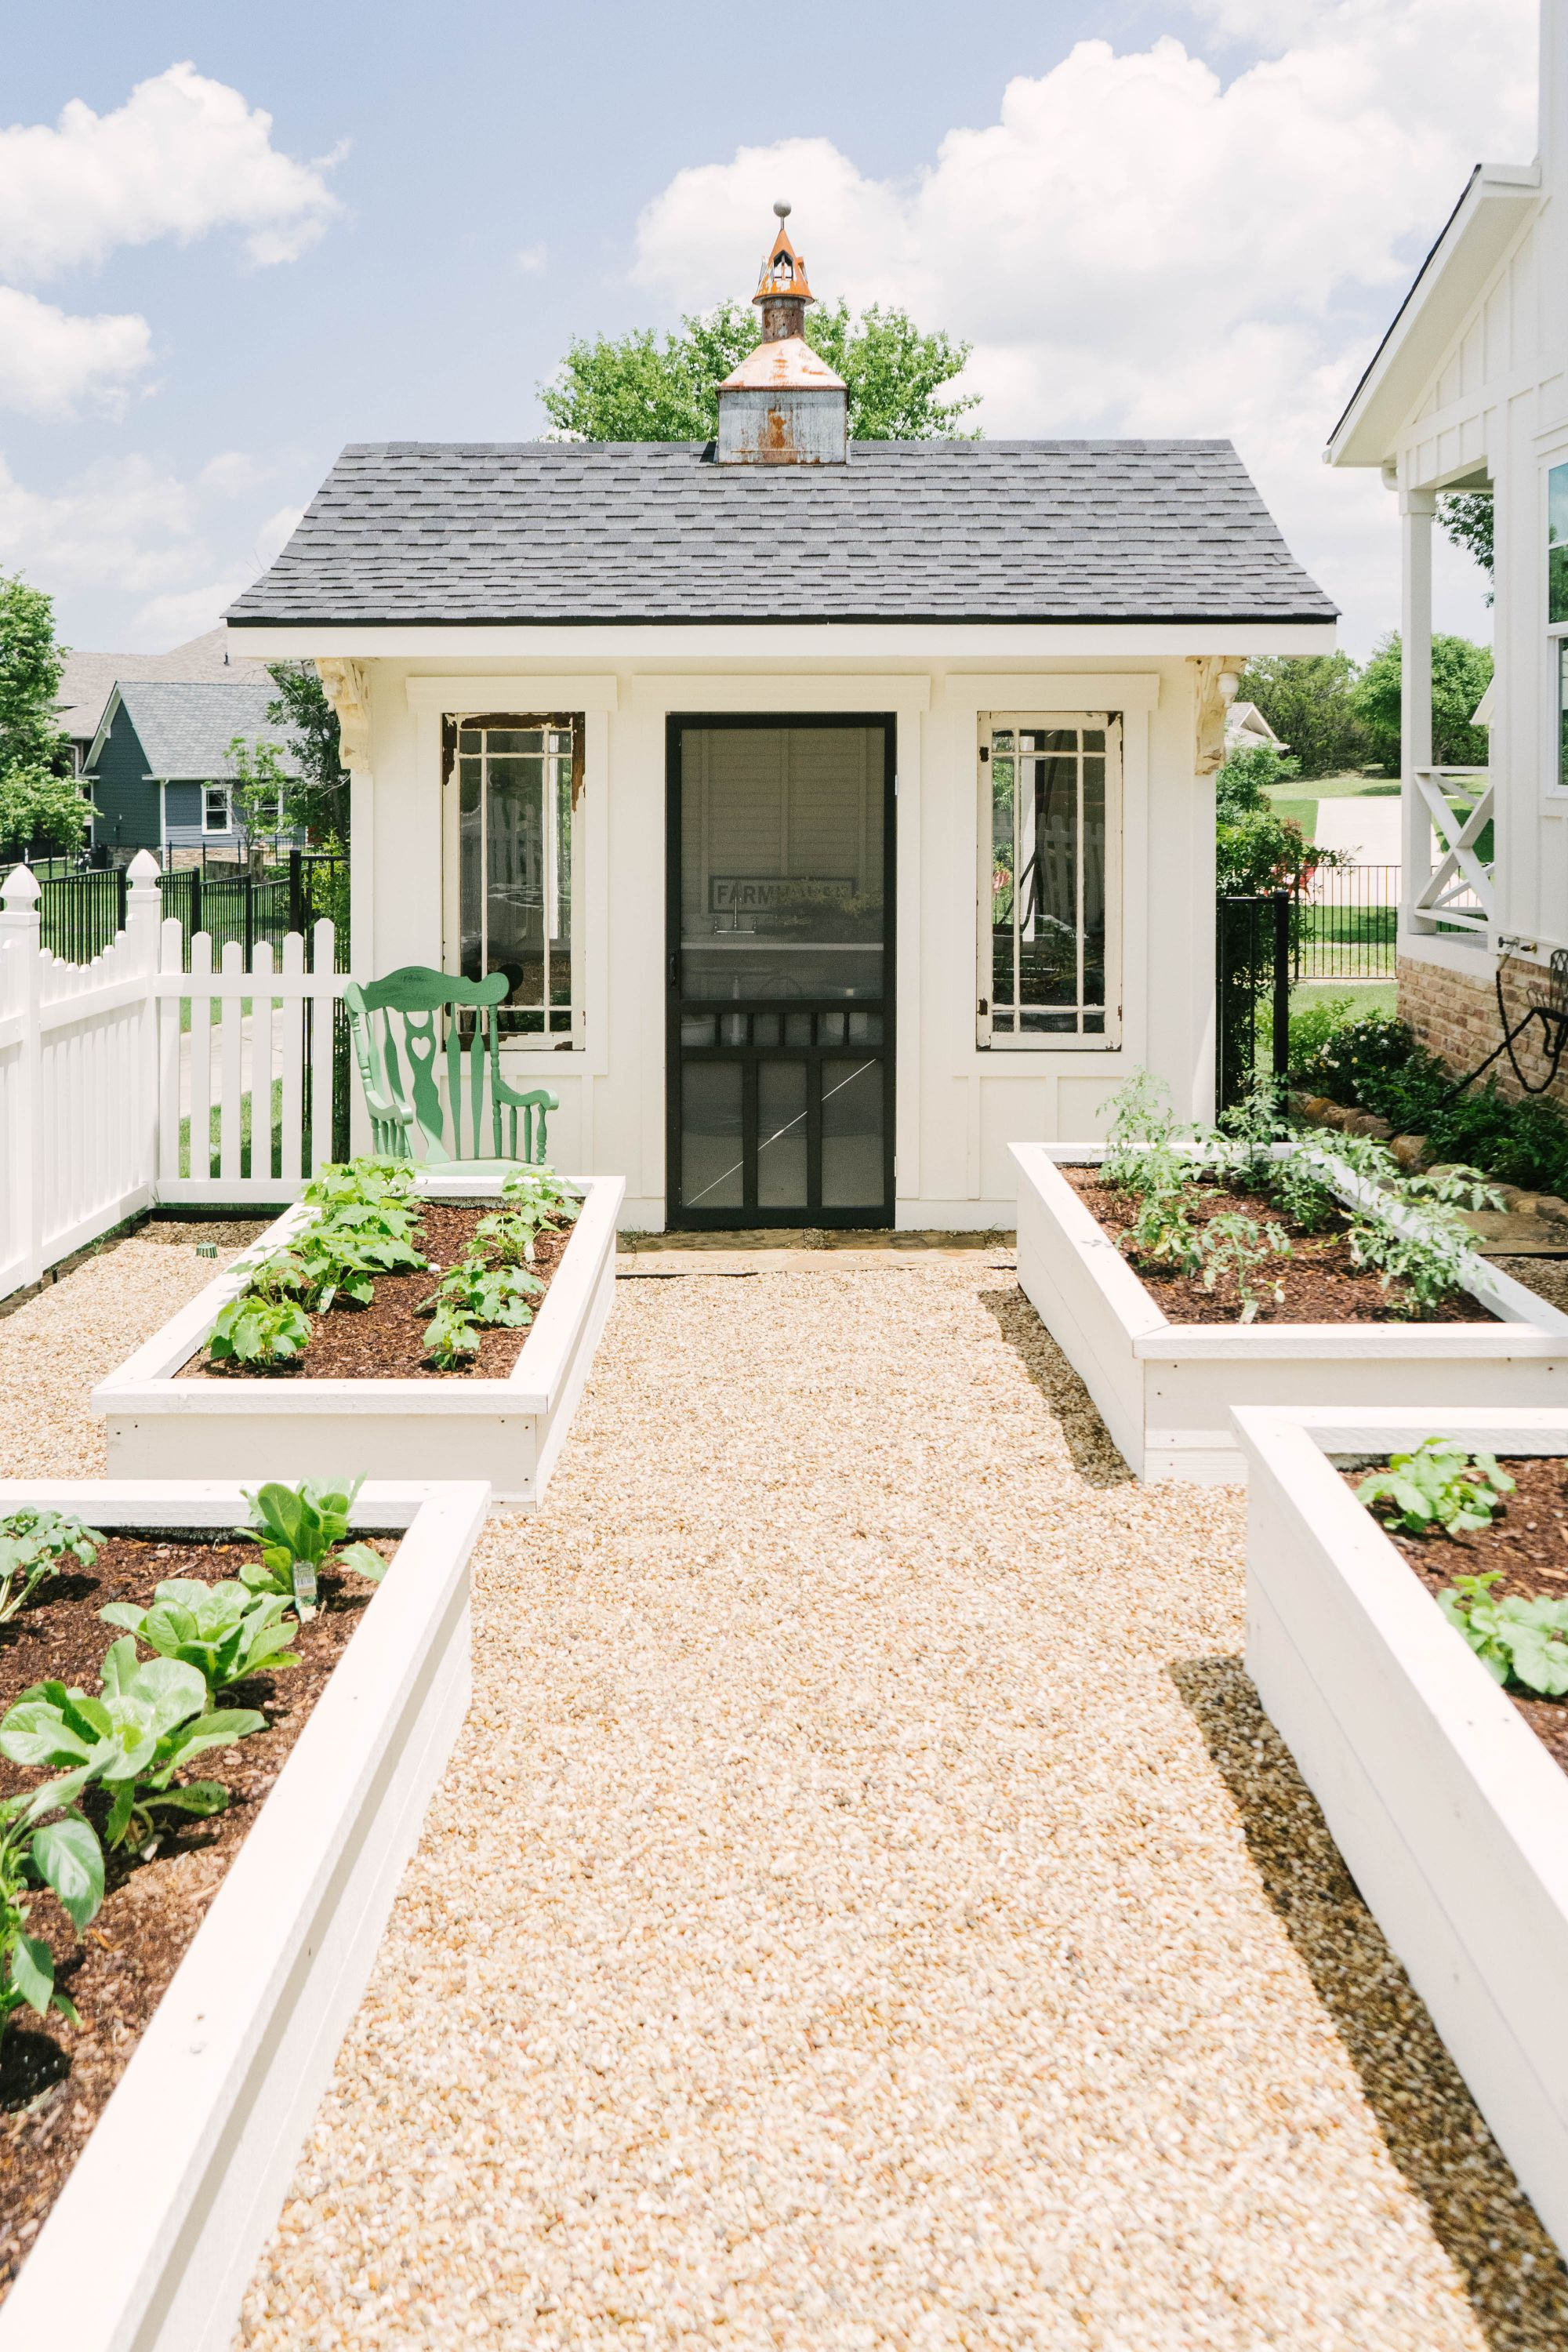 Classic Farmhouse Home Tour - White Potting Shed - White Raised Beds - Modern Garden